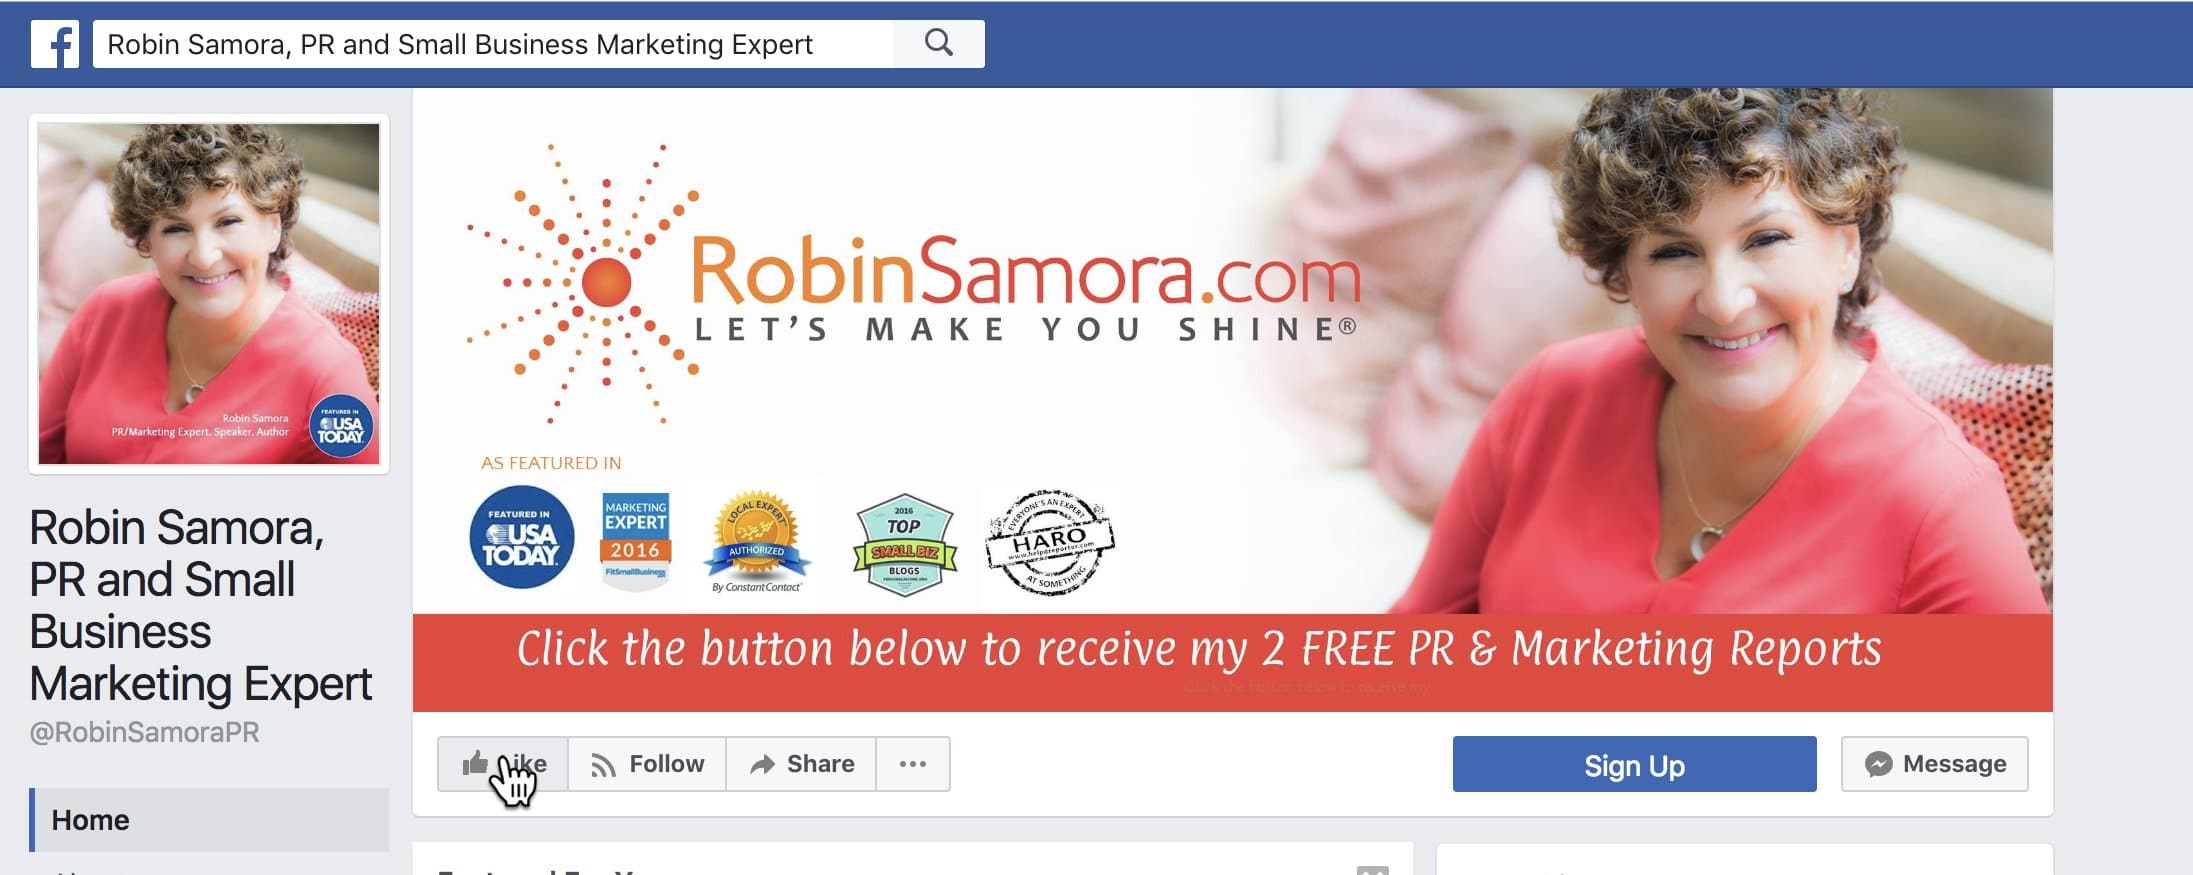 15 Ways to Get More Facebook Likes [For Your Business Page] | Robin